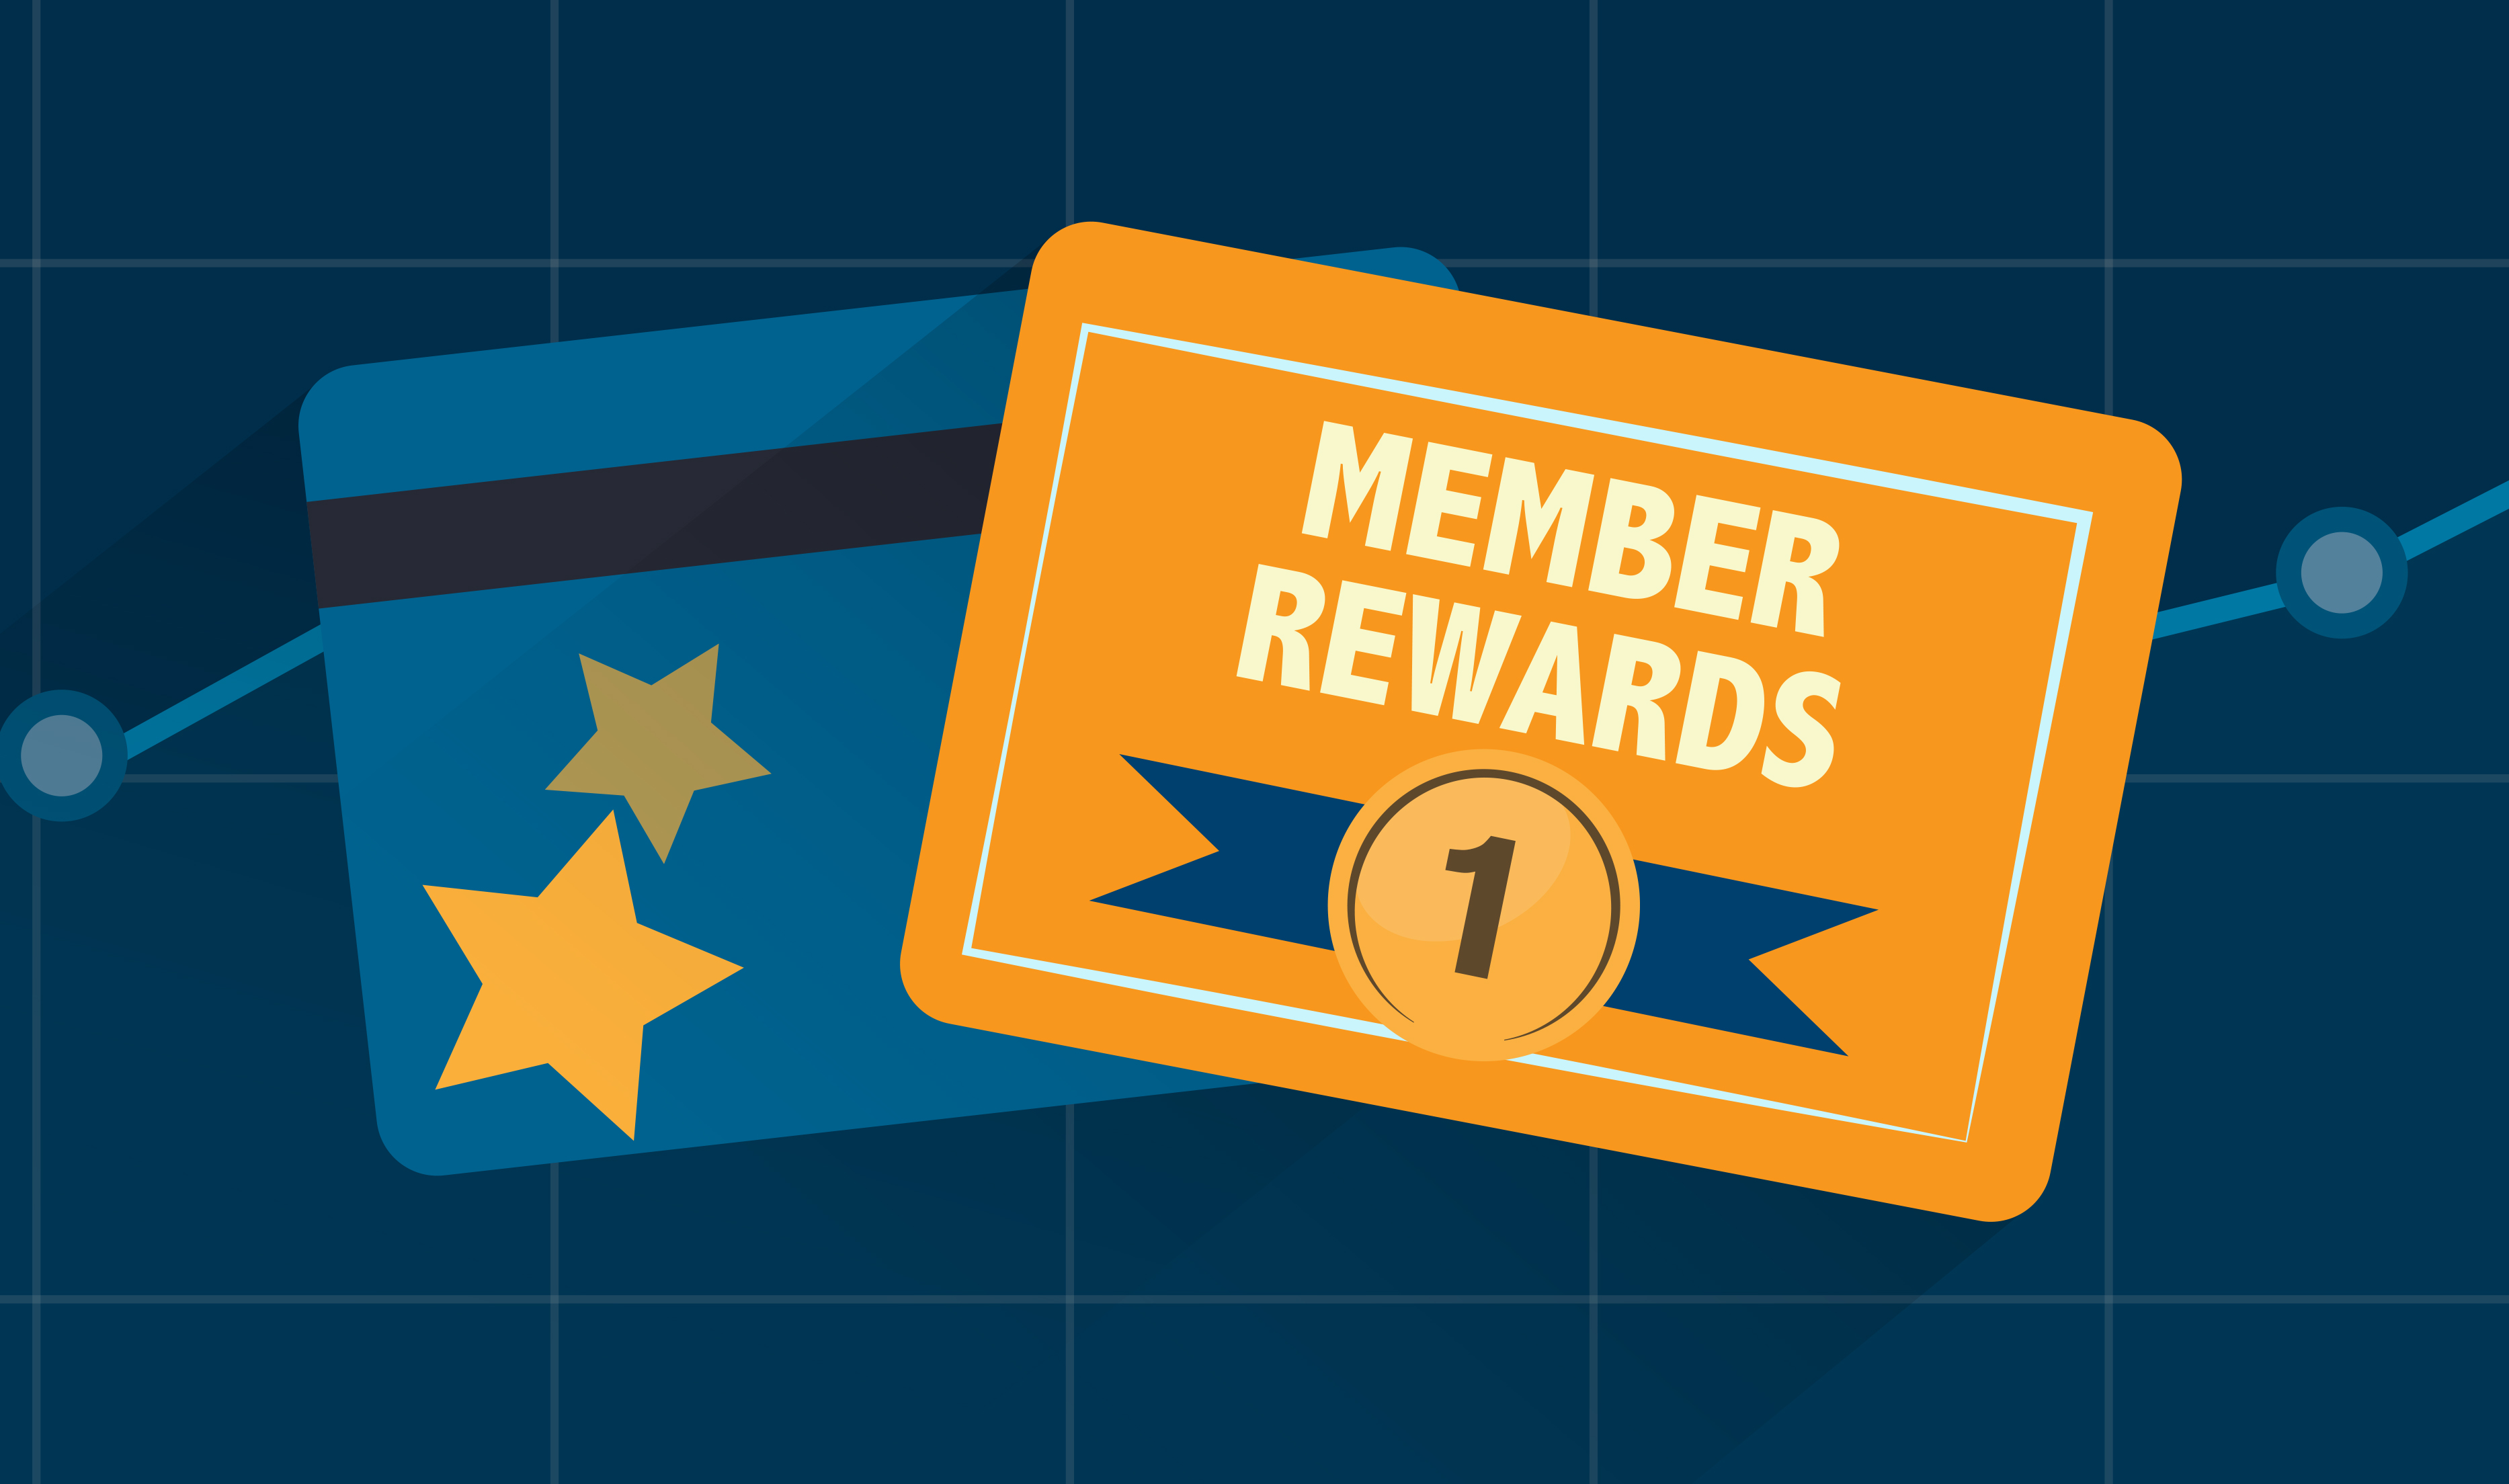 The paid loyalty program